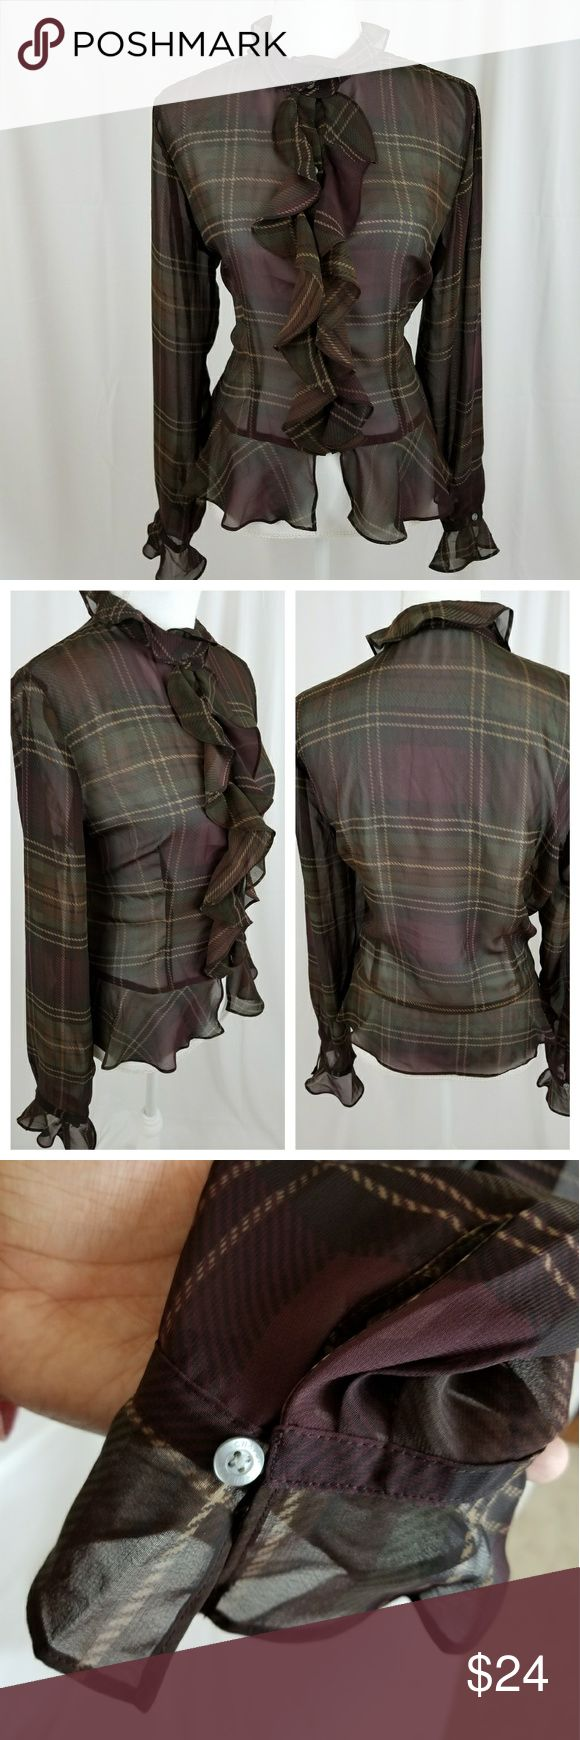 Chaps Ralph Lauren ruffle blouse Plaid Chaps Ralph Lauren ruffle blouse Plaid  Beautiful Ruffle Front Top  SIZE L  A-17 Chaps Tops Button Down Shirts